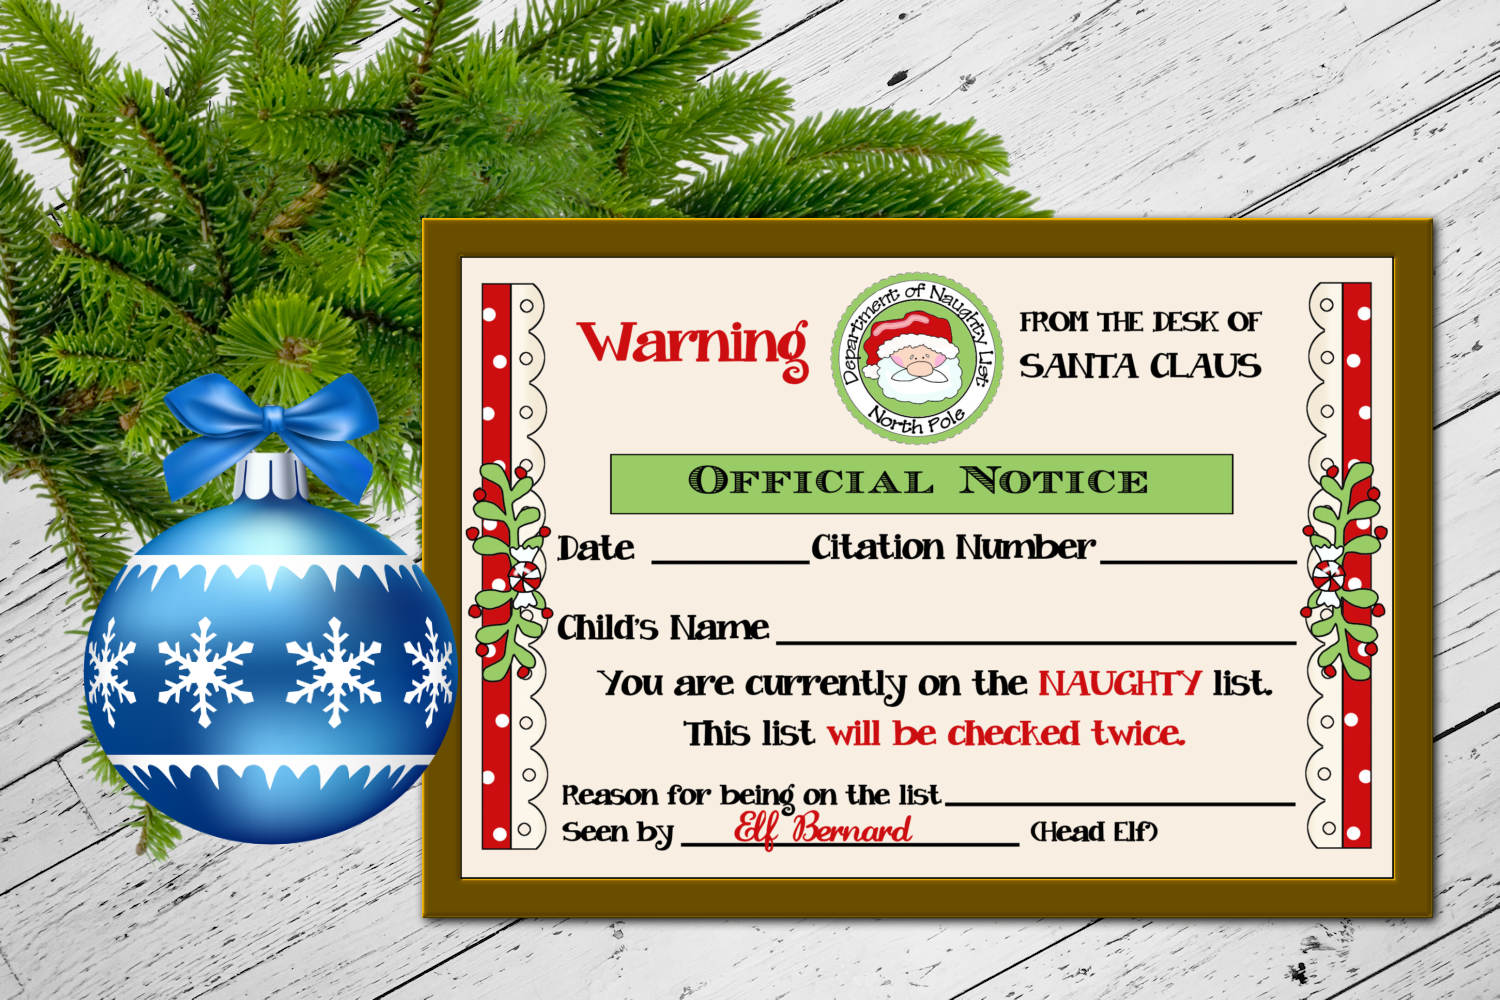 Santa's Naughty List Certificate 4 x 6 inches example image 2